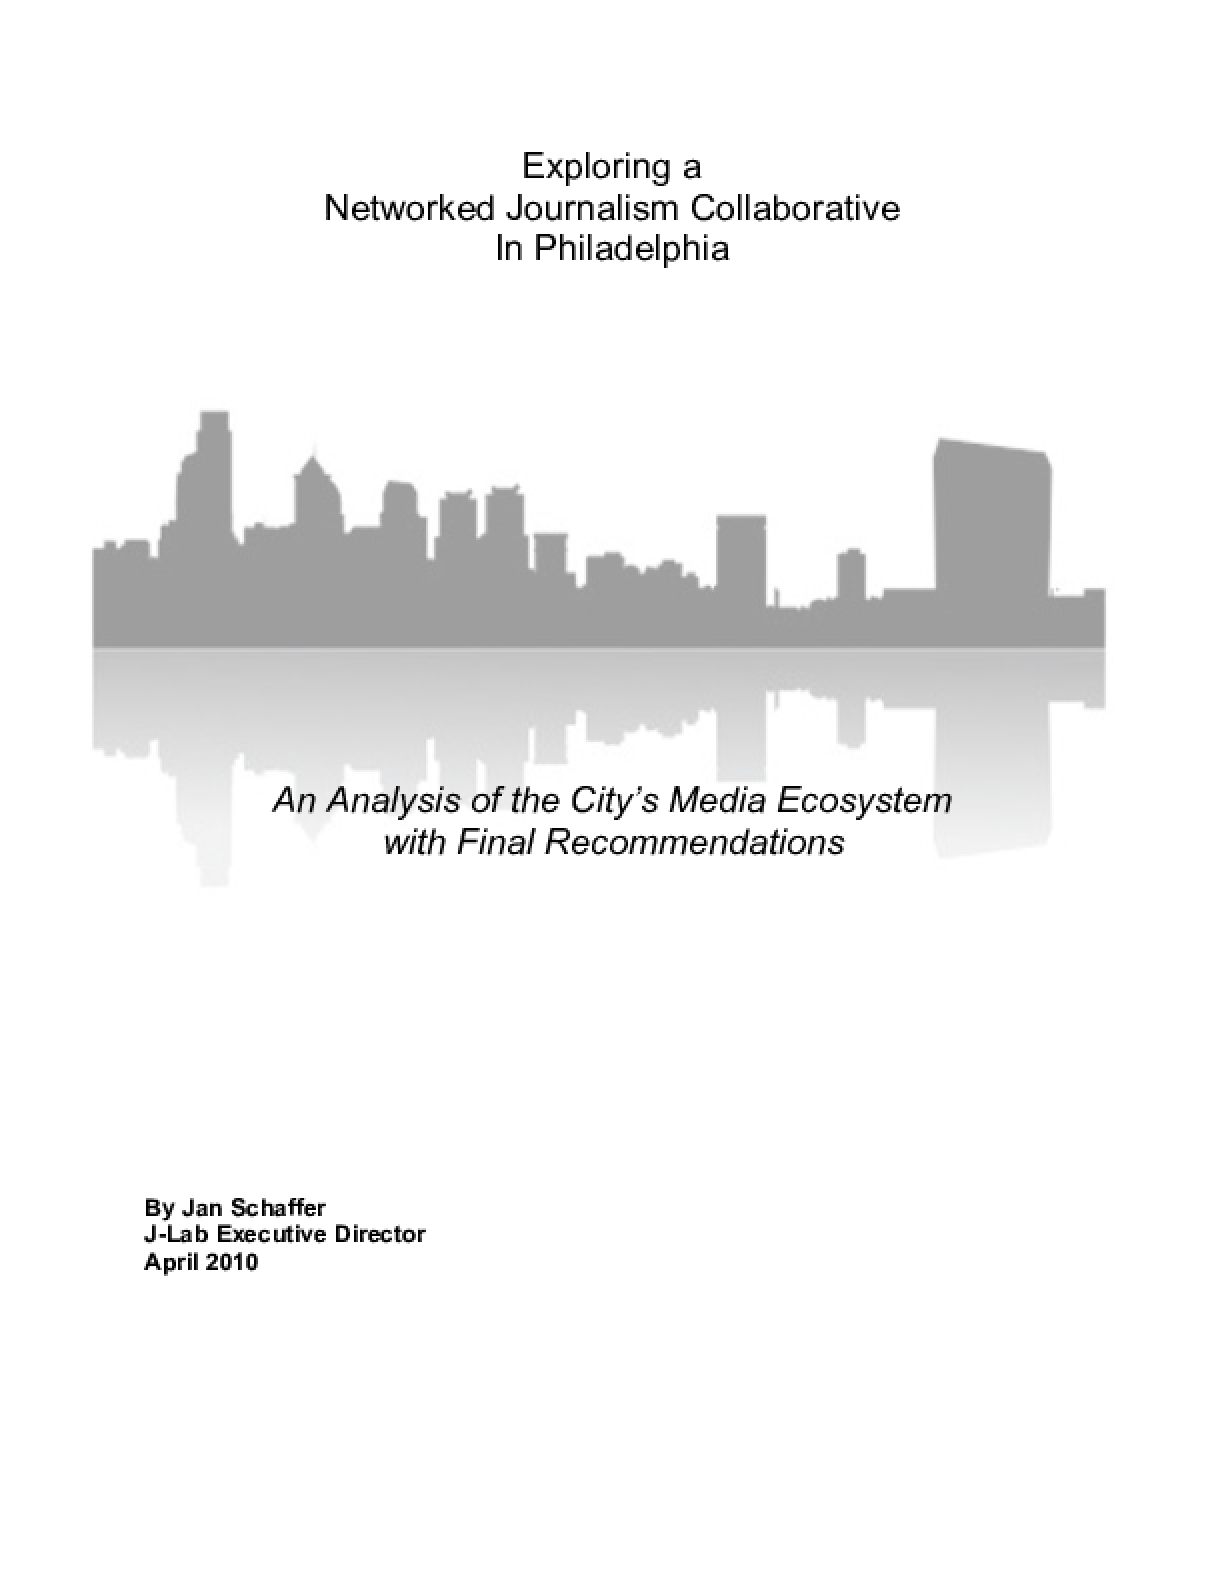 Exploring a Networked Journalism Collaborative in Philadelphia